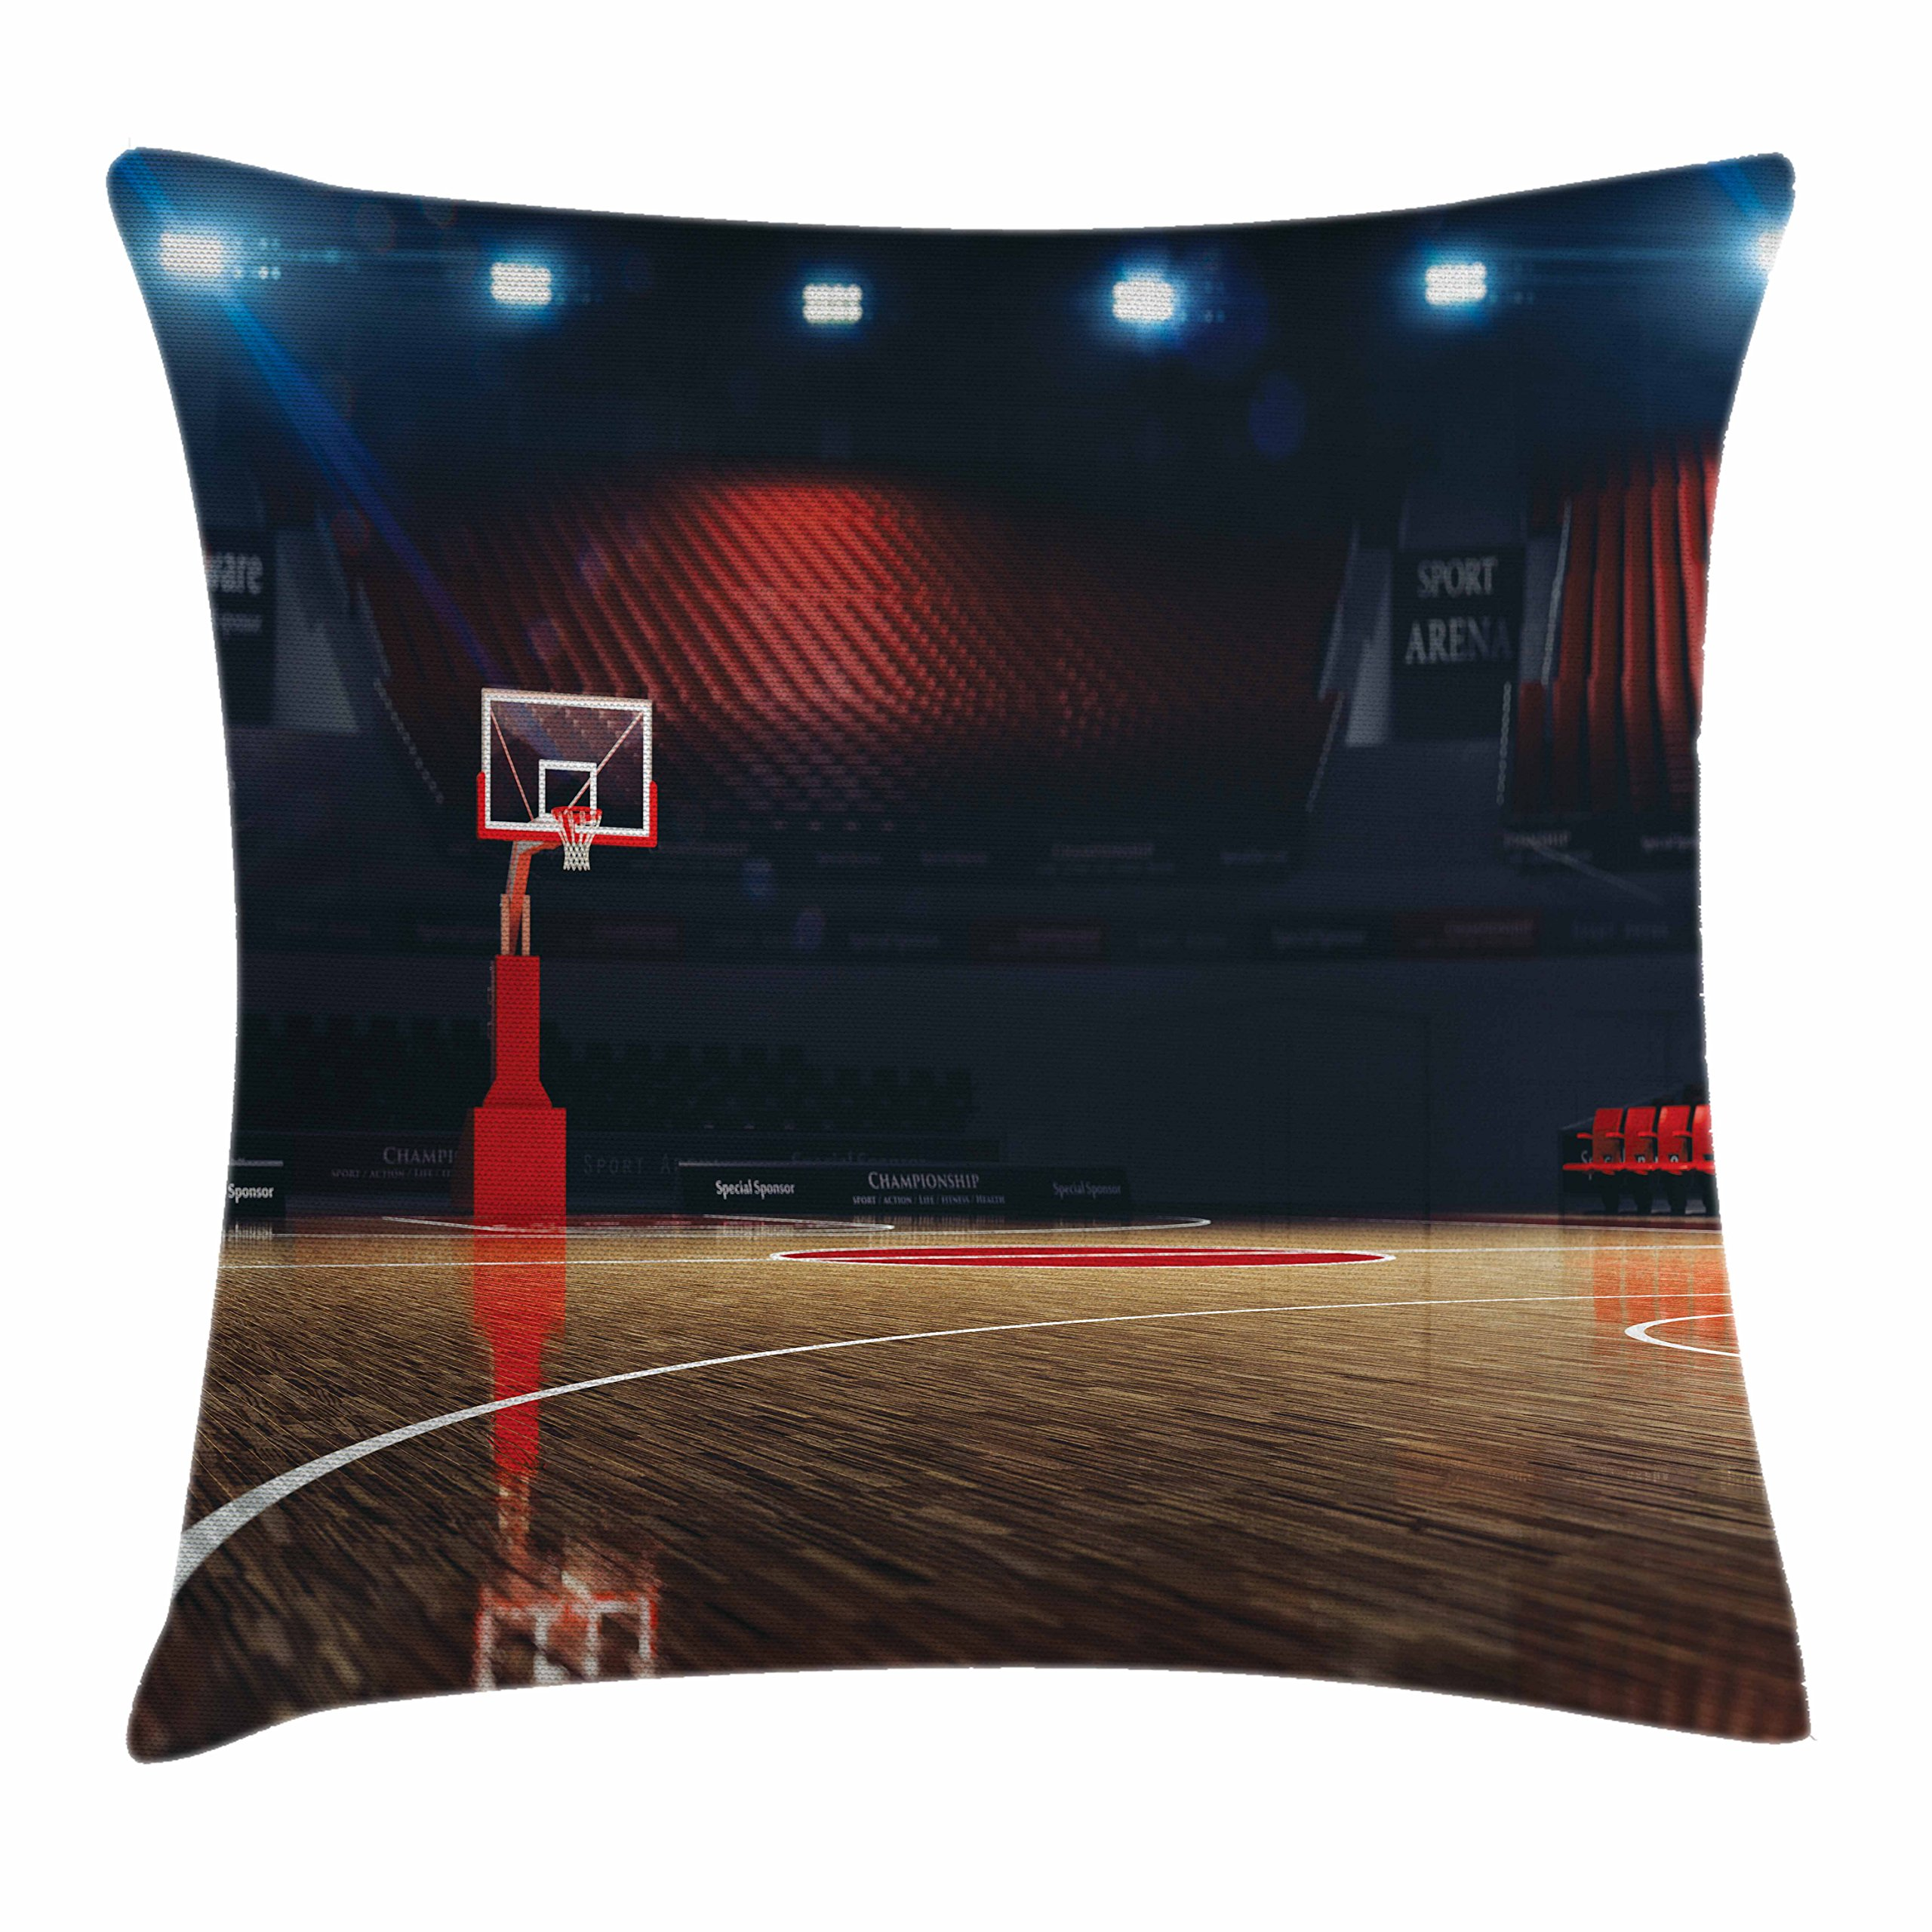 Ambesonne Sports Decor Throw Pillow Cushion Cover, Picture of Empty Basketball Court Sport Arena with Lights and Wood Floor, Decorative Square Accent Pillow Case, 16 X 16 inches, Brown Black Red